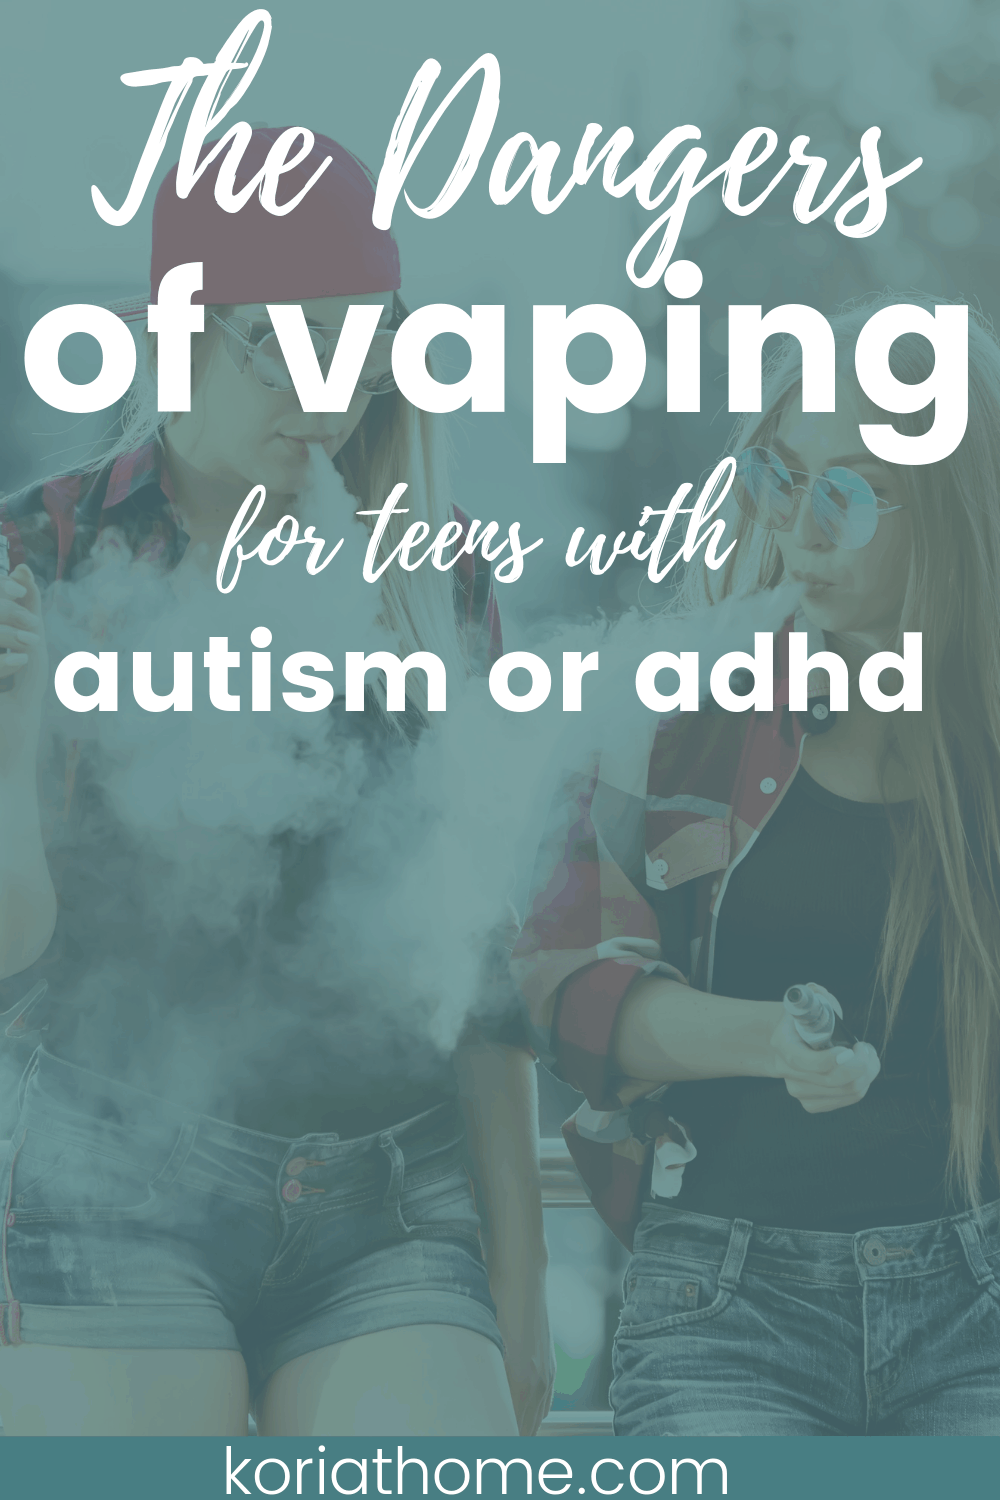 Image with the text reading the dangers of vaping for teens with autism or adhd